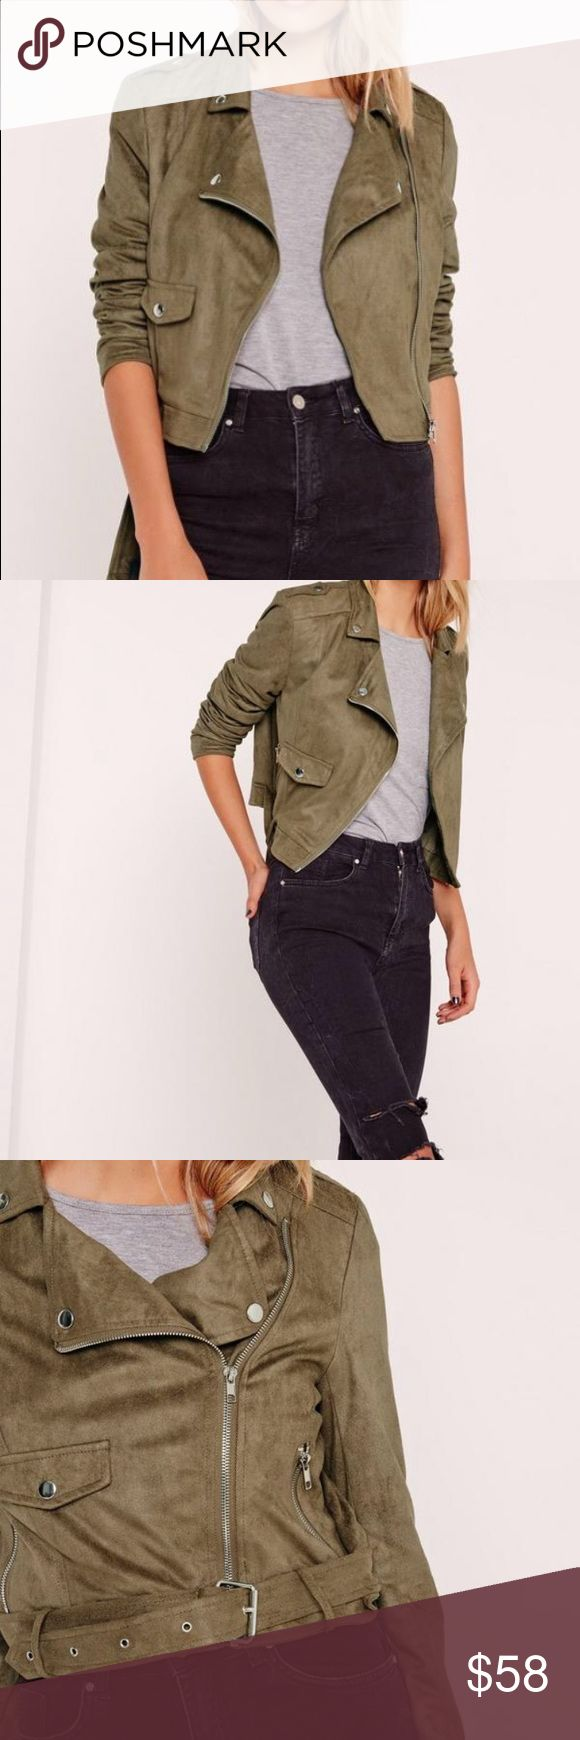 *NEW* MISSGUIDED faux suede biker jacket Super cute faux suede biker jacket in khaki/olive green color. Sold out online! Never been worn (no tags sorry), no stains. UK Size 8 is equivalent to US Size 4 (seen on model height 5'7) Missguided Jackets & Coats